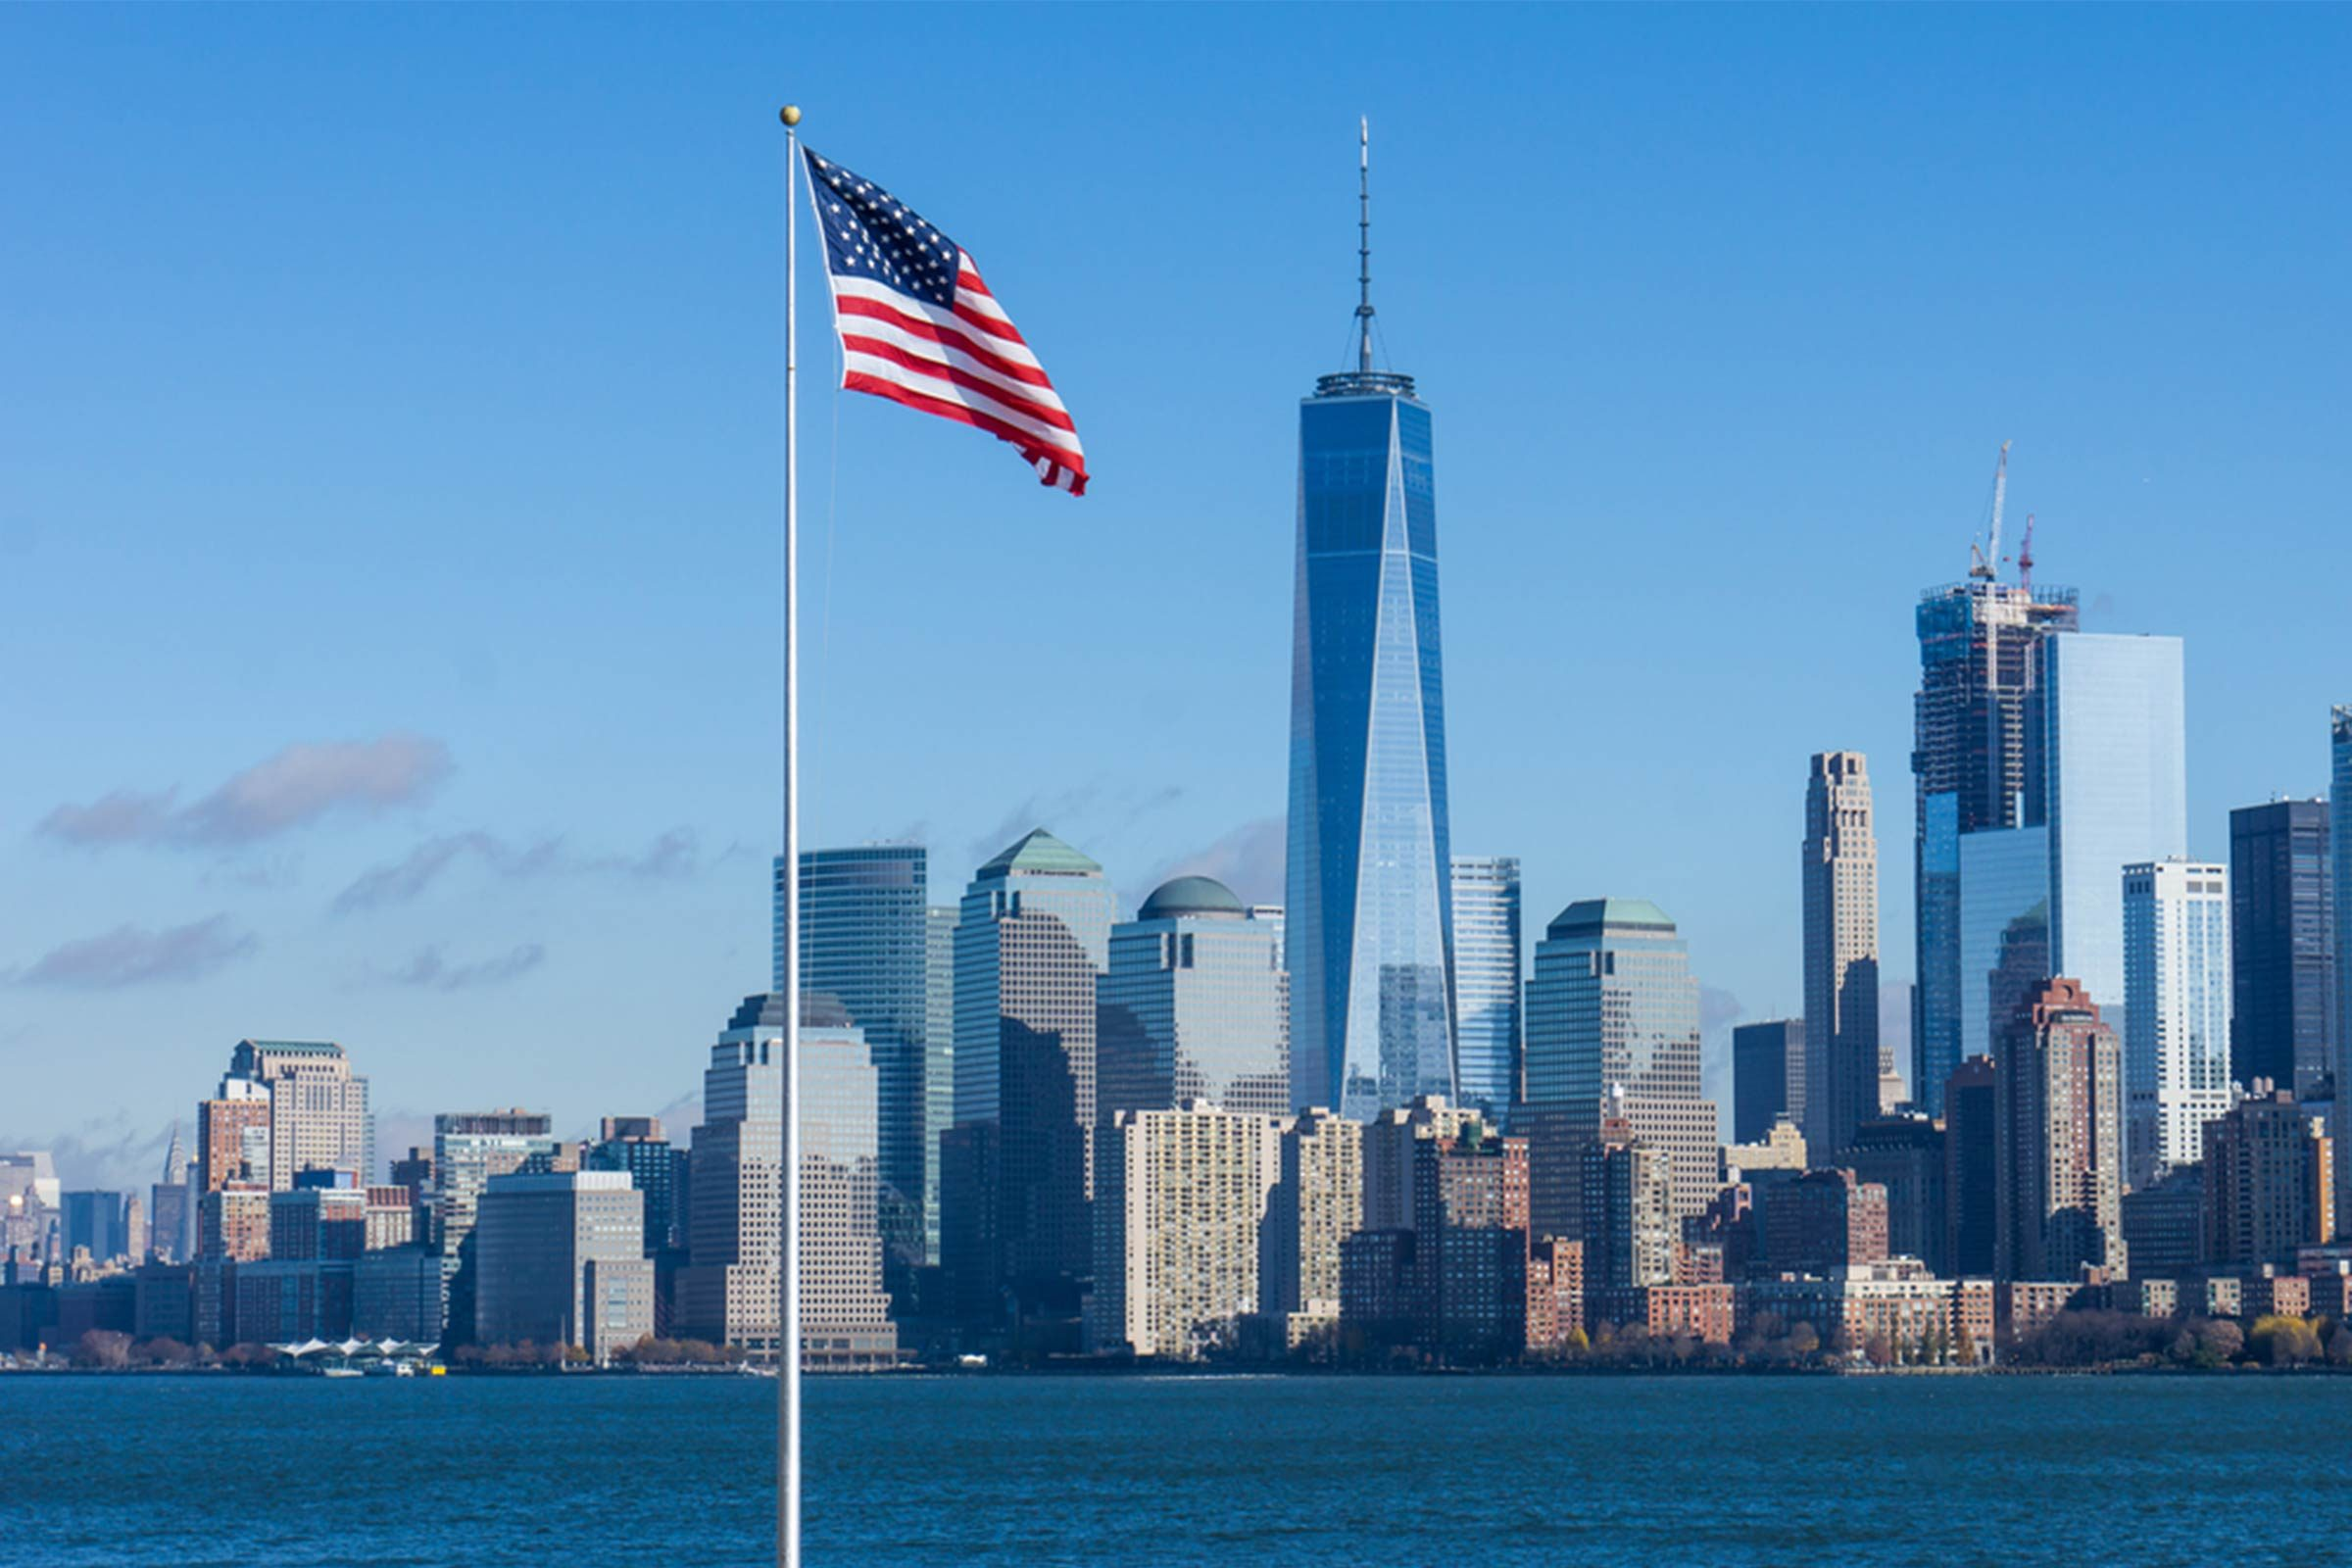 03-interesting-facts-about-world-trade-center-one-627711674-Nutthaphon